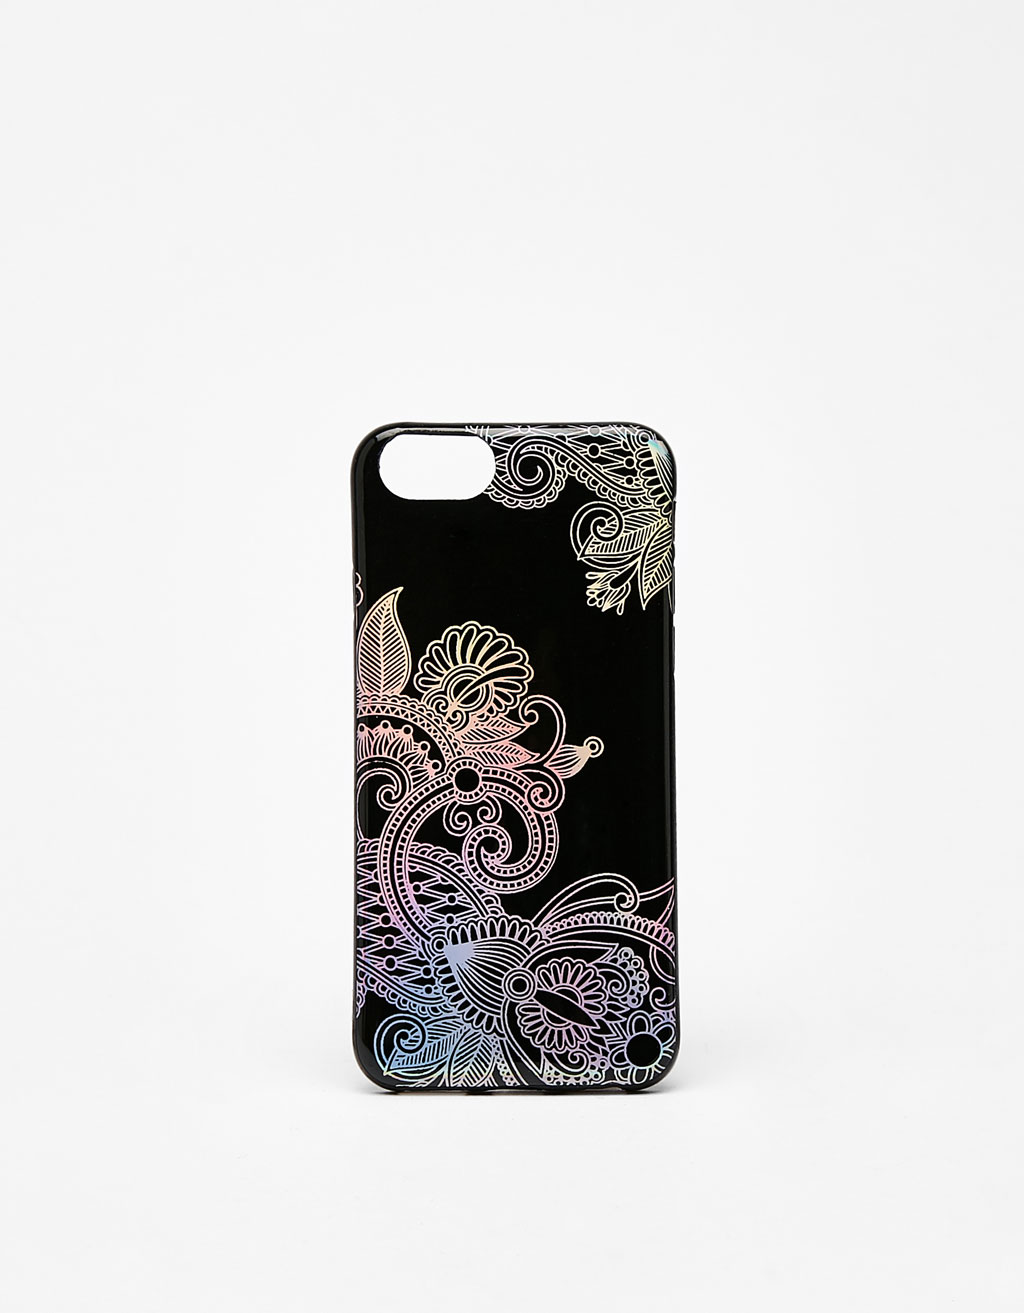 iPhone 6/6s/7 mobile phone case with raised holographic pattern